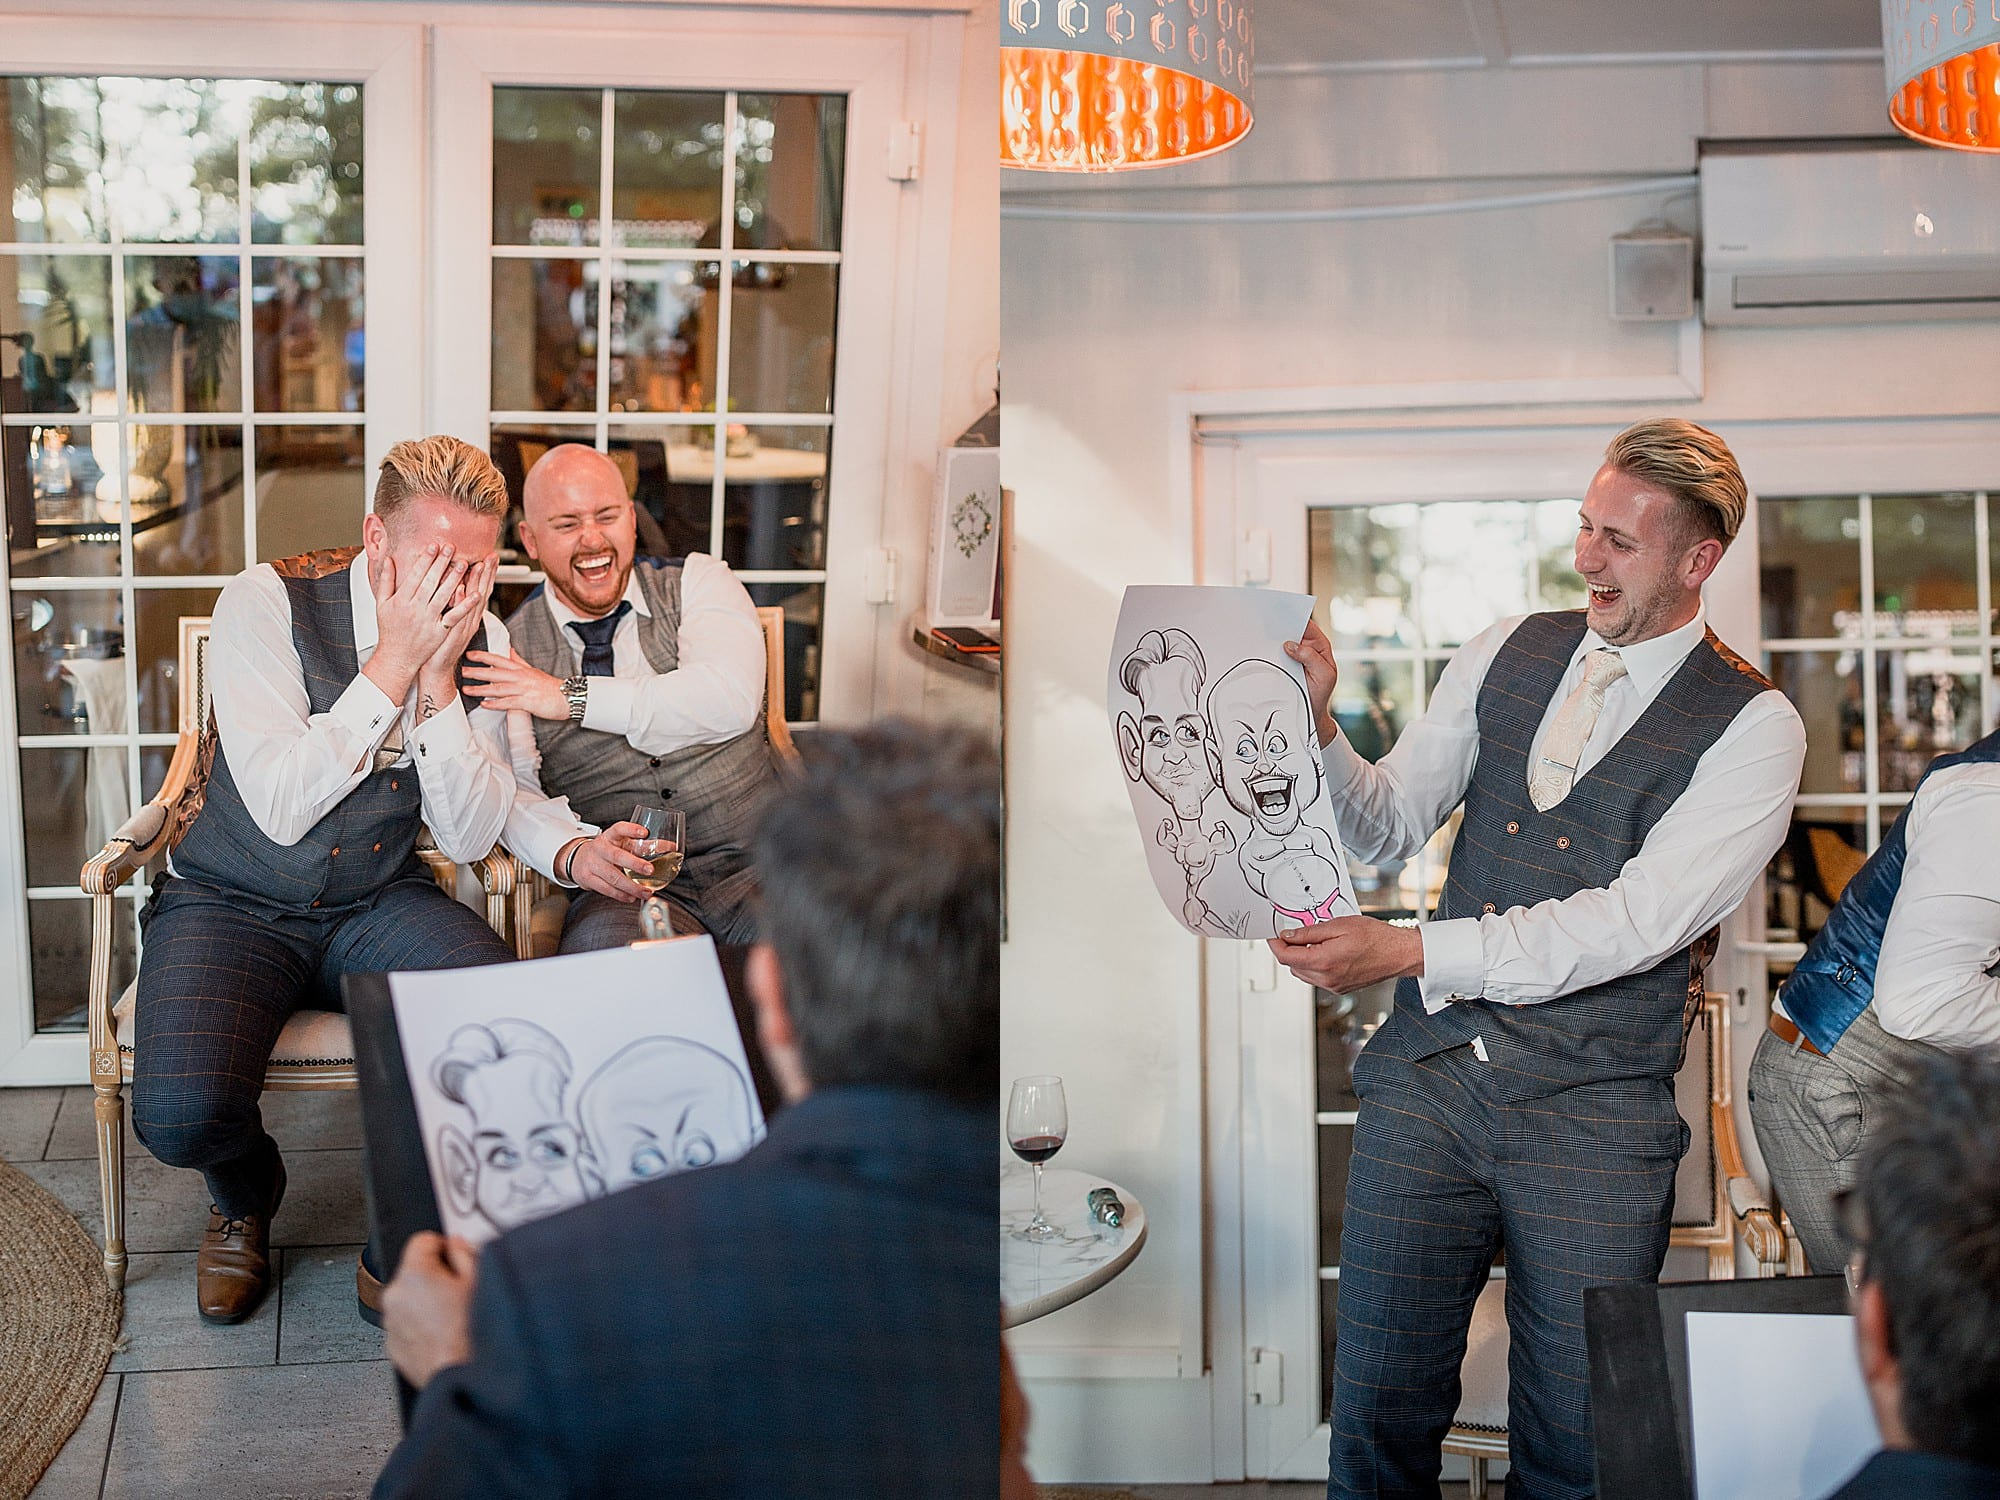 reactions to the caricaturist